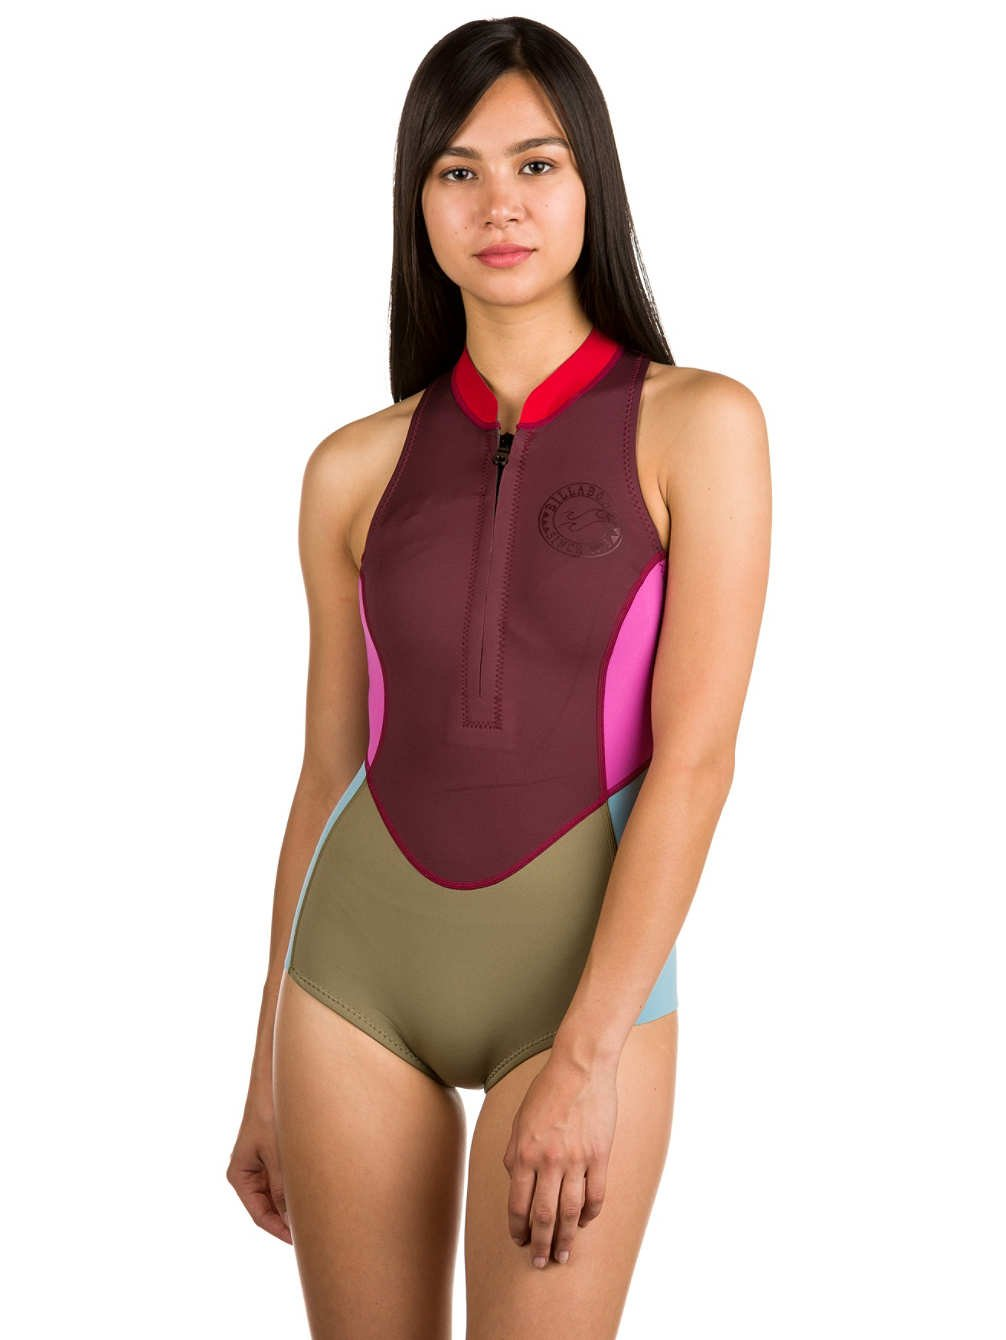 4f9e607b2f Amazon.com   Billabong Surf Capsule Sleeveless 1MM Spring Shorty Wetsuit  Mulberry - Suit up in Retro Tones and a Modern Wetsuit Cut   Sports    Outdoors